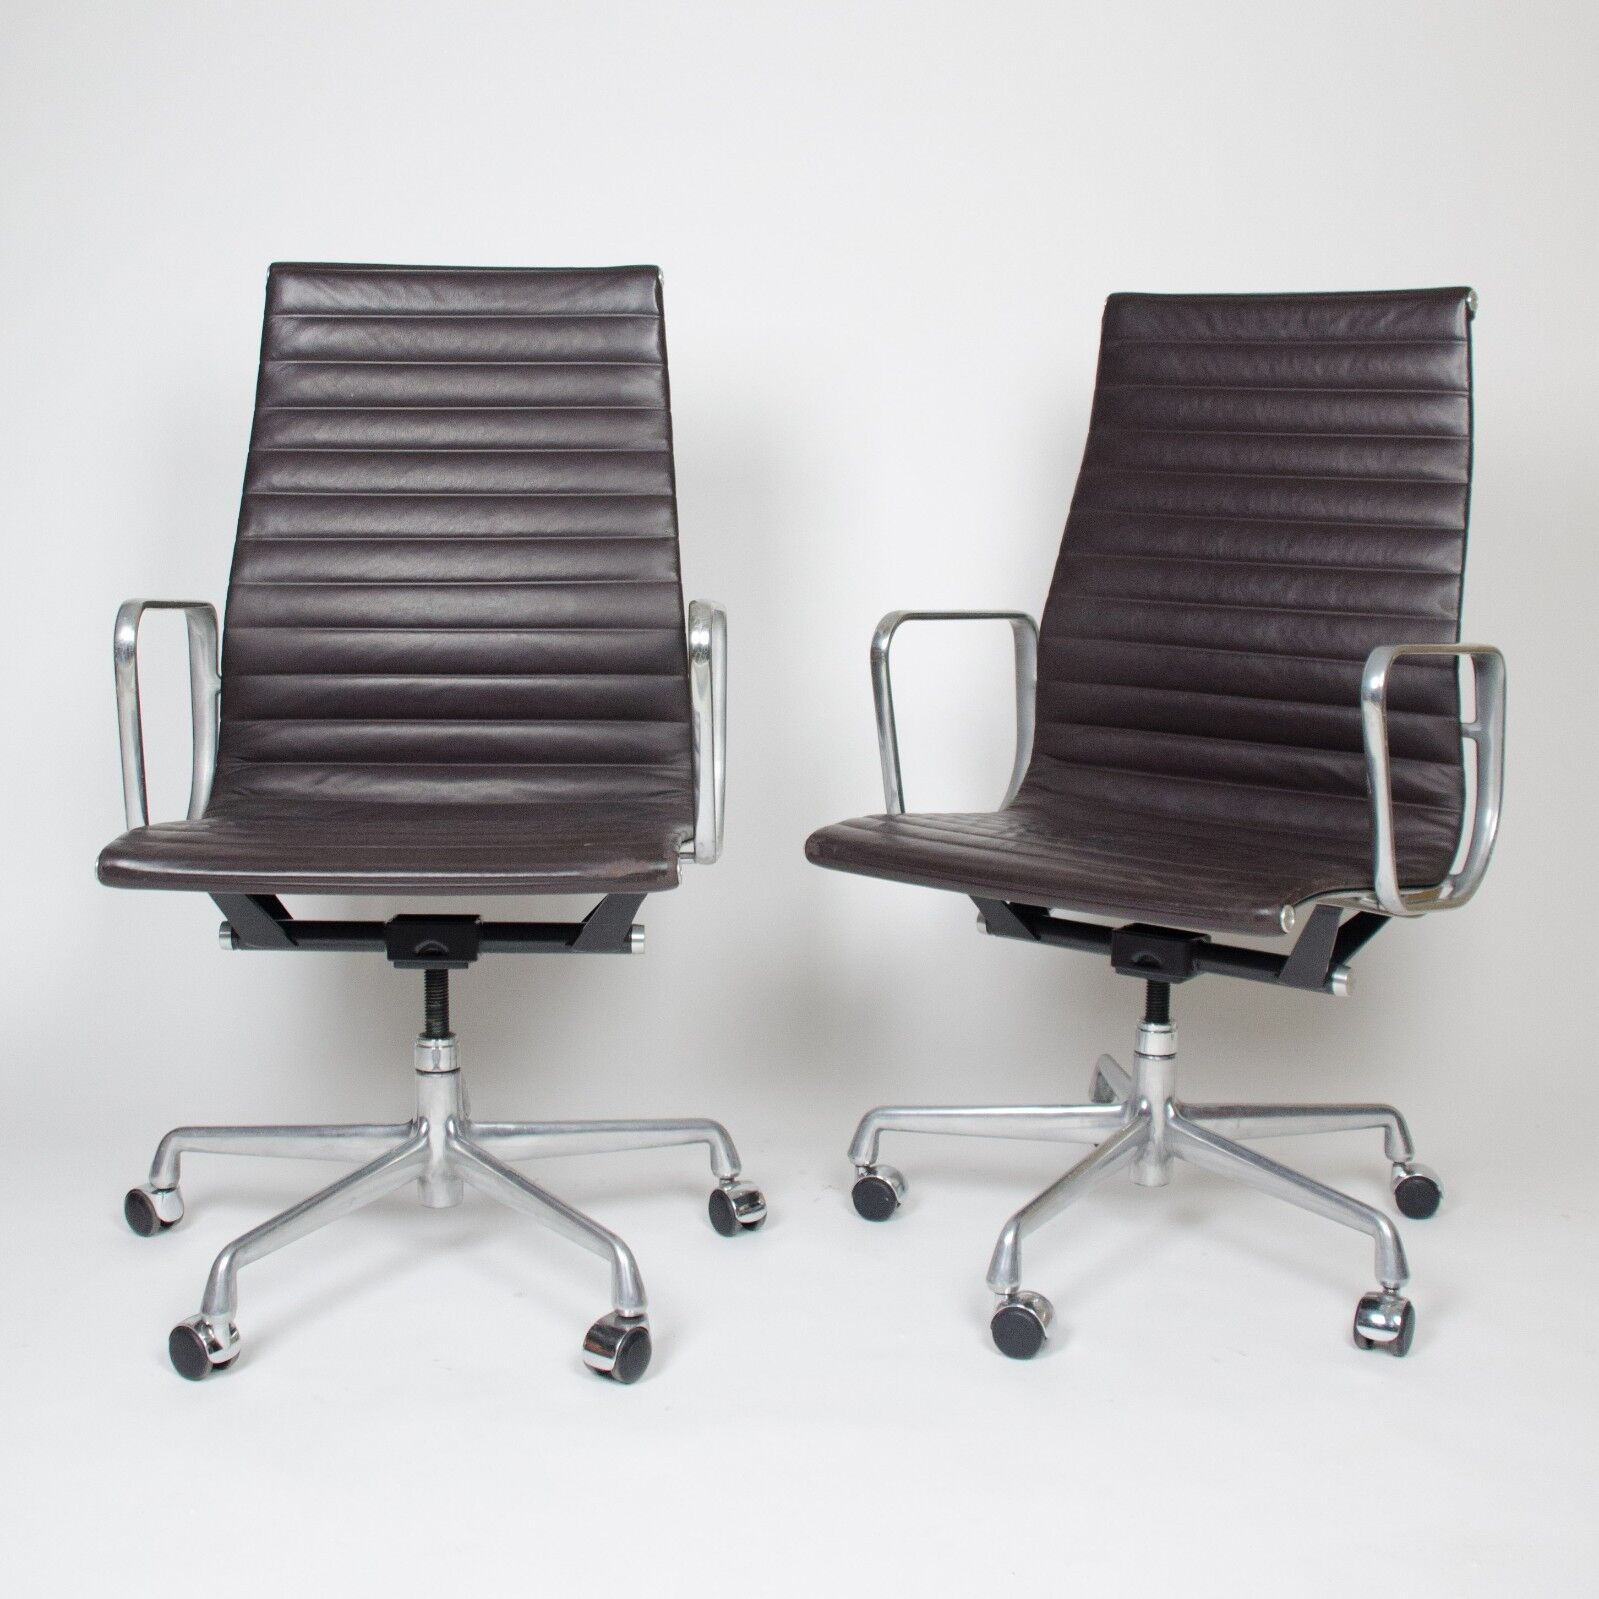 Eames Herman Miller Aluminum Group Executive Desk Chairs Black Fabric 7 Avail